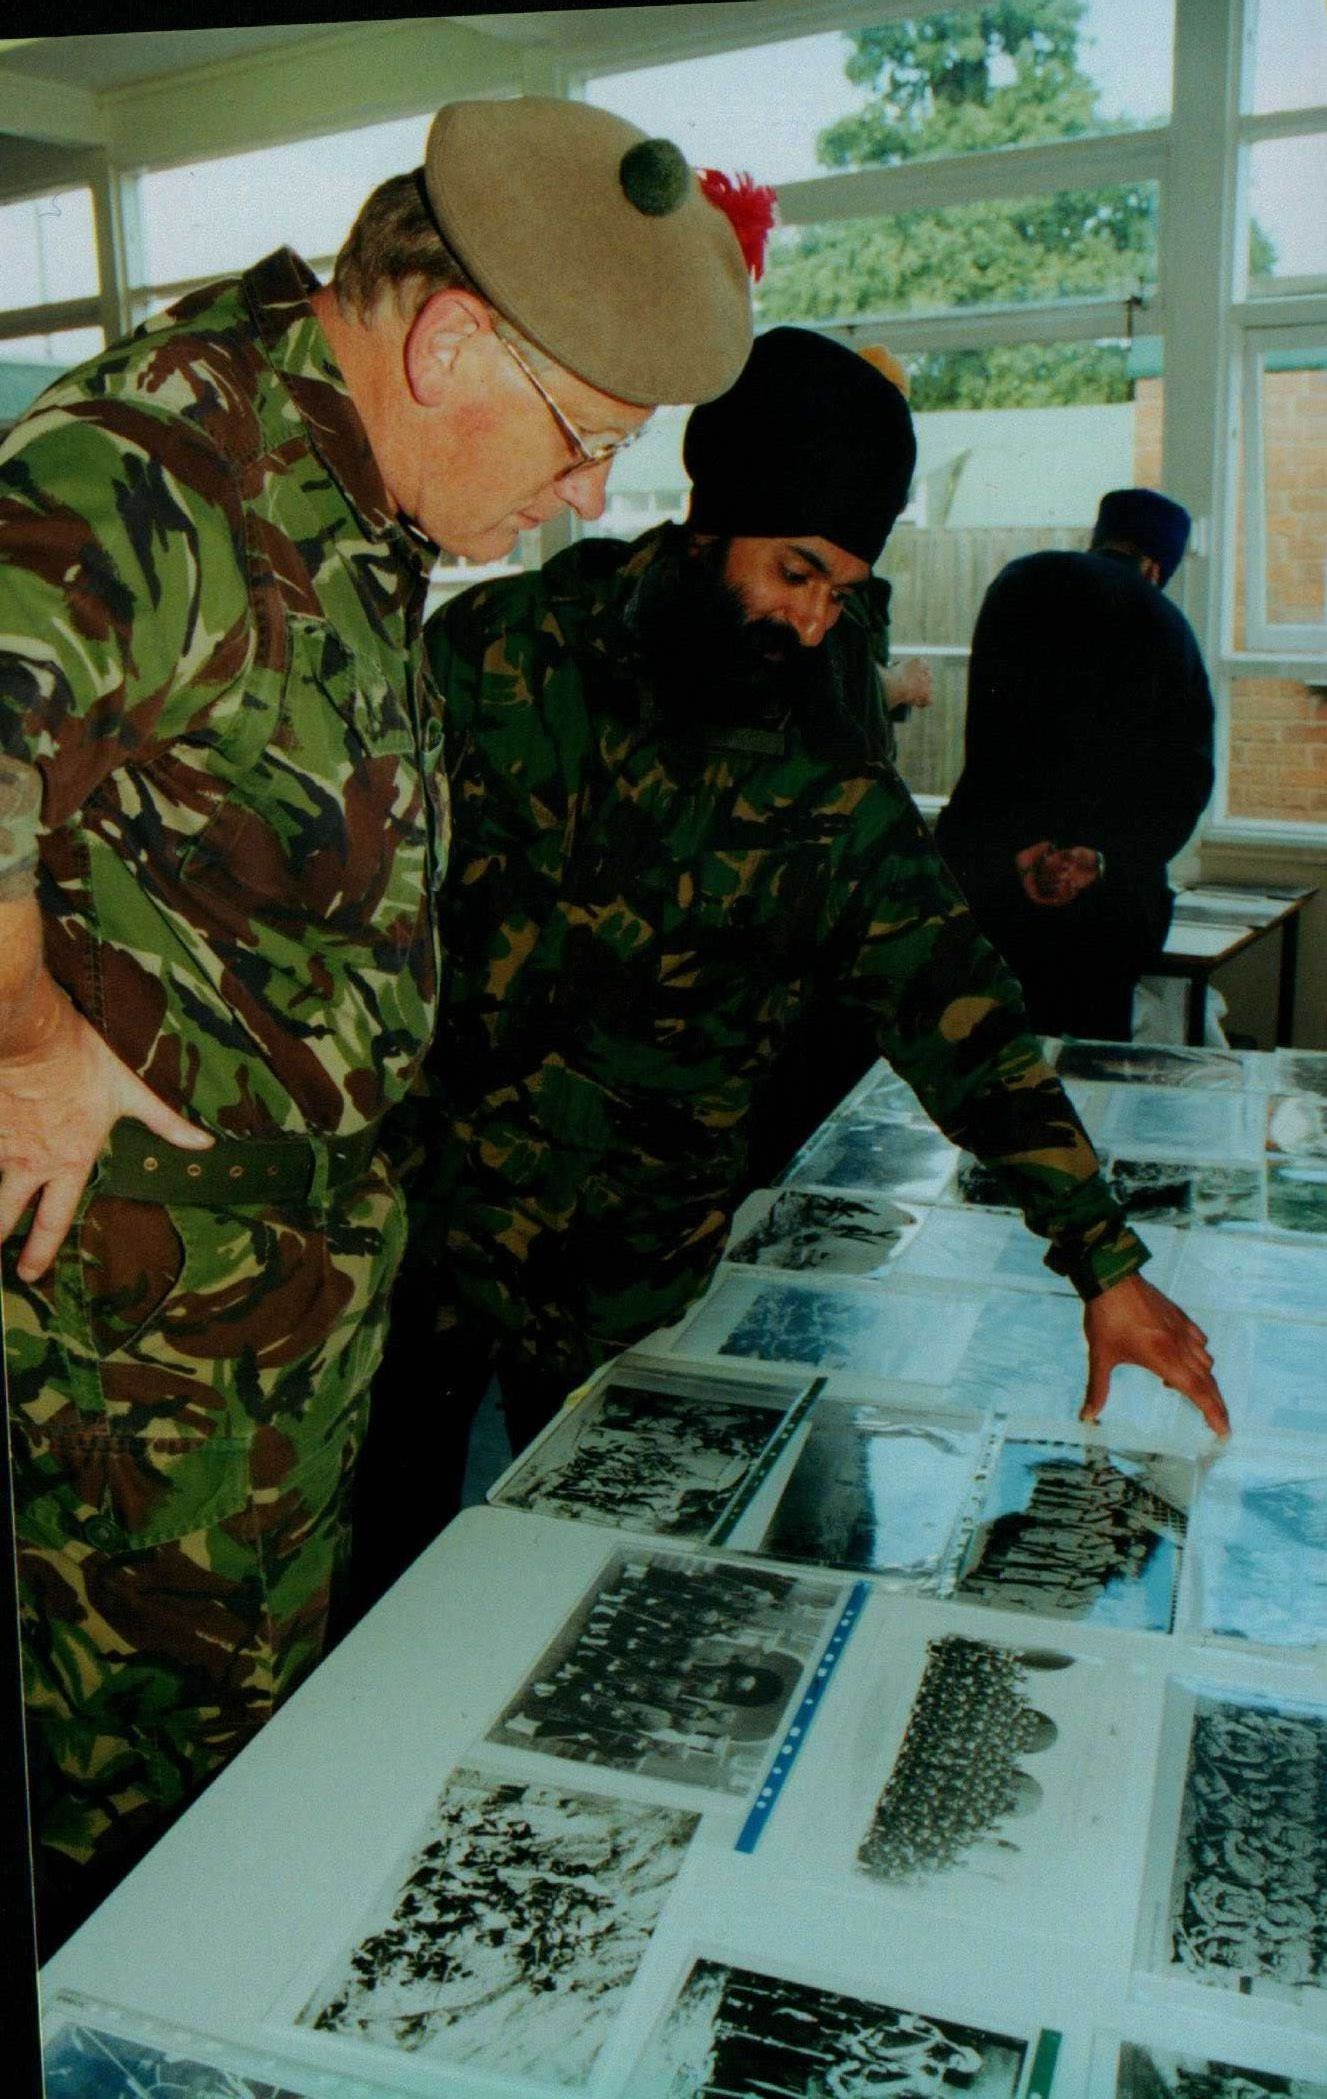 Kernal in his element - working with the British Army in exploring Anglo-Sikh history